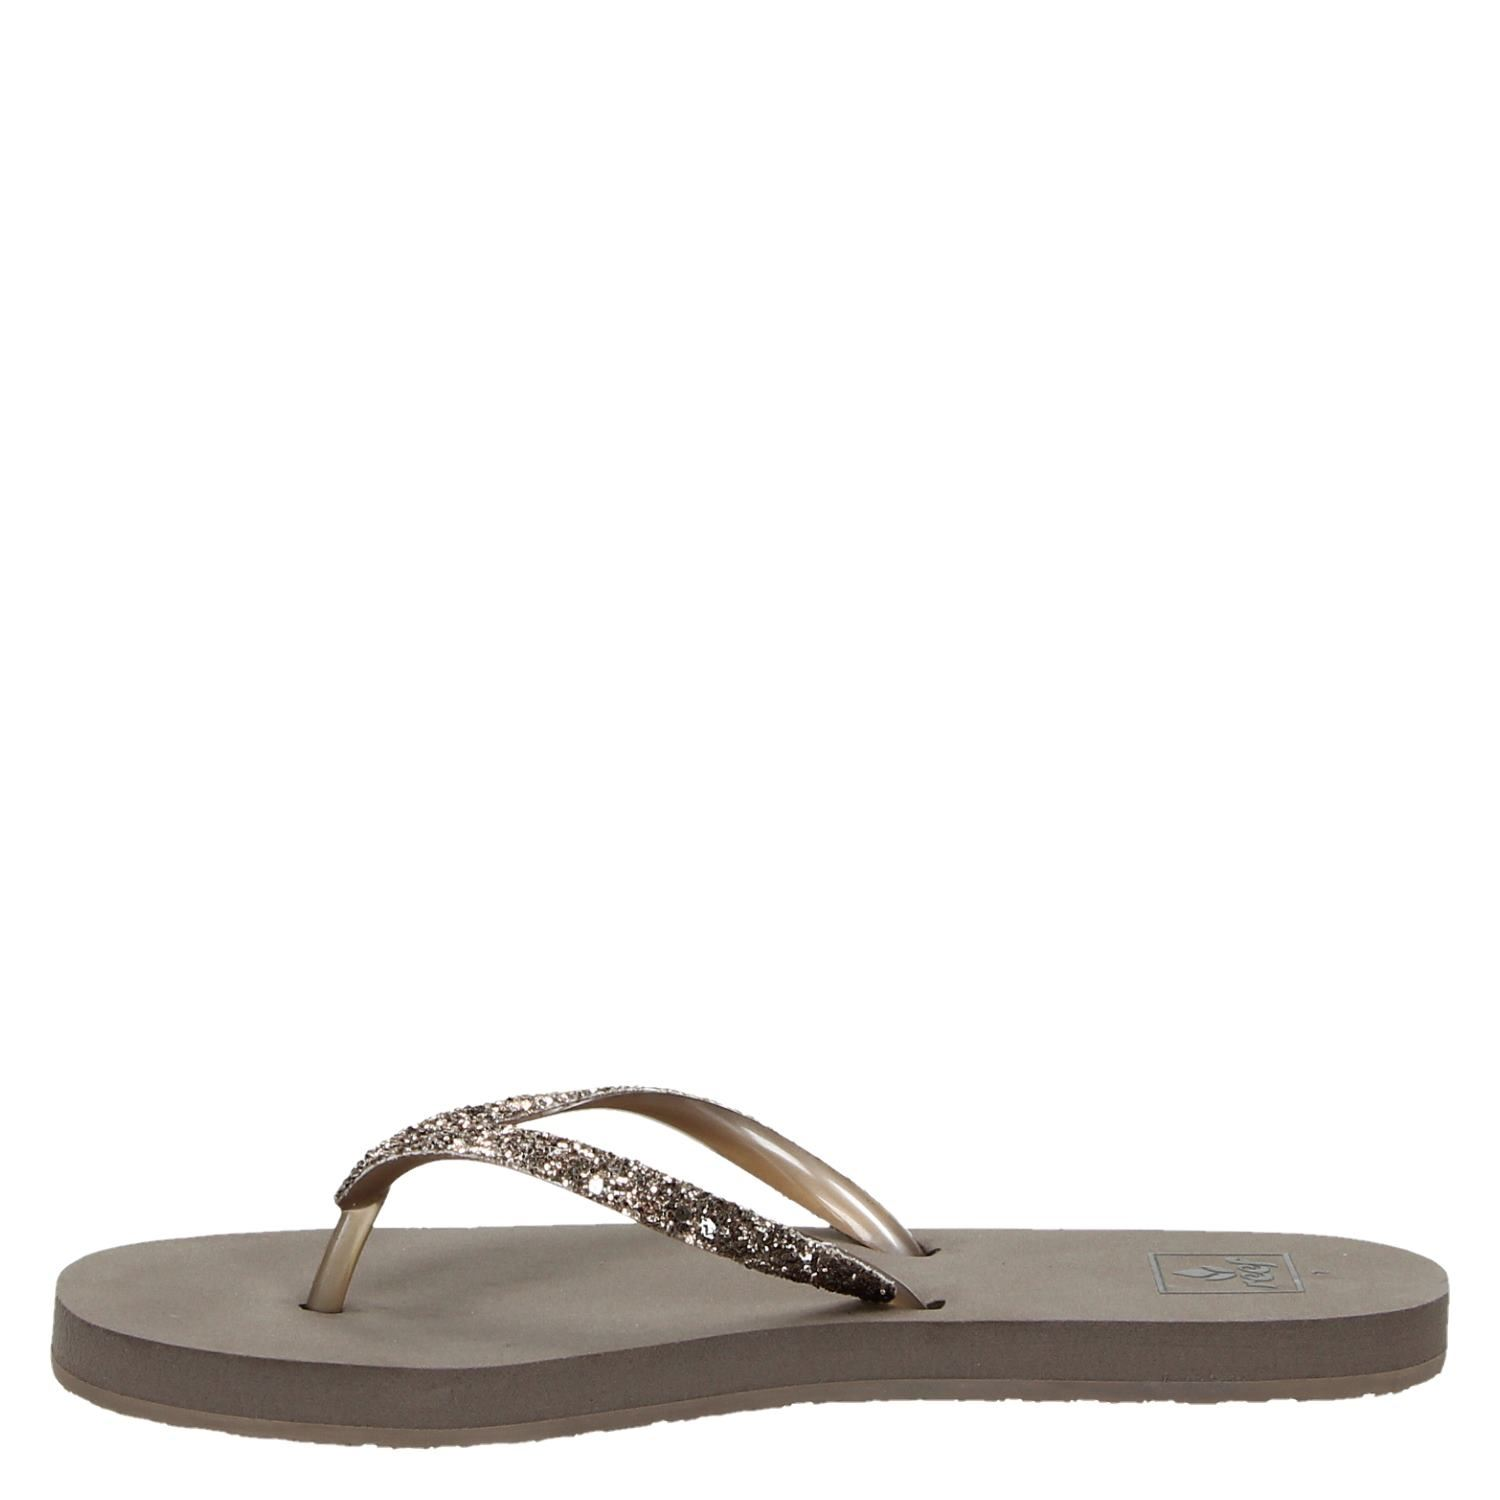 Reef Slippers Taupe Dames Normaal Stargazer 35ALqjR4